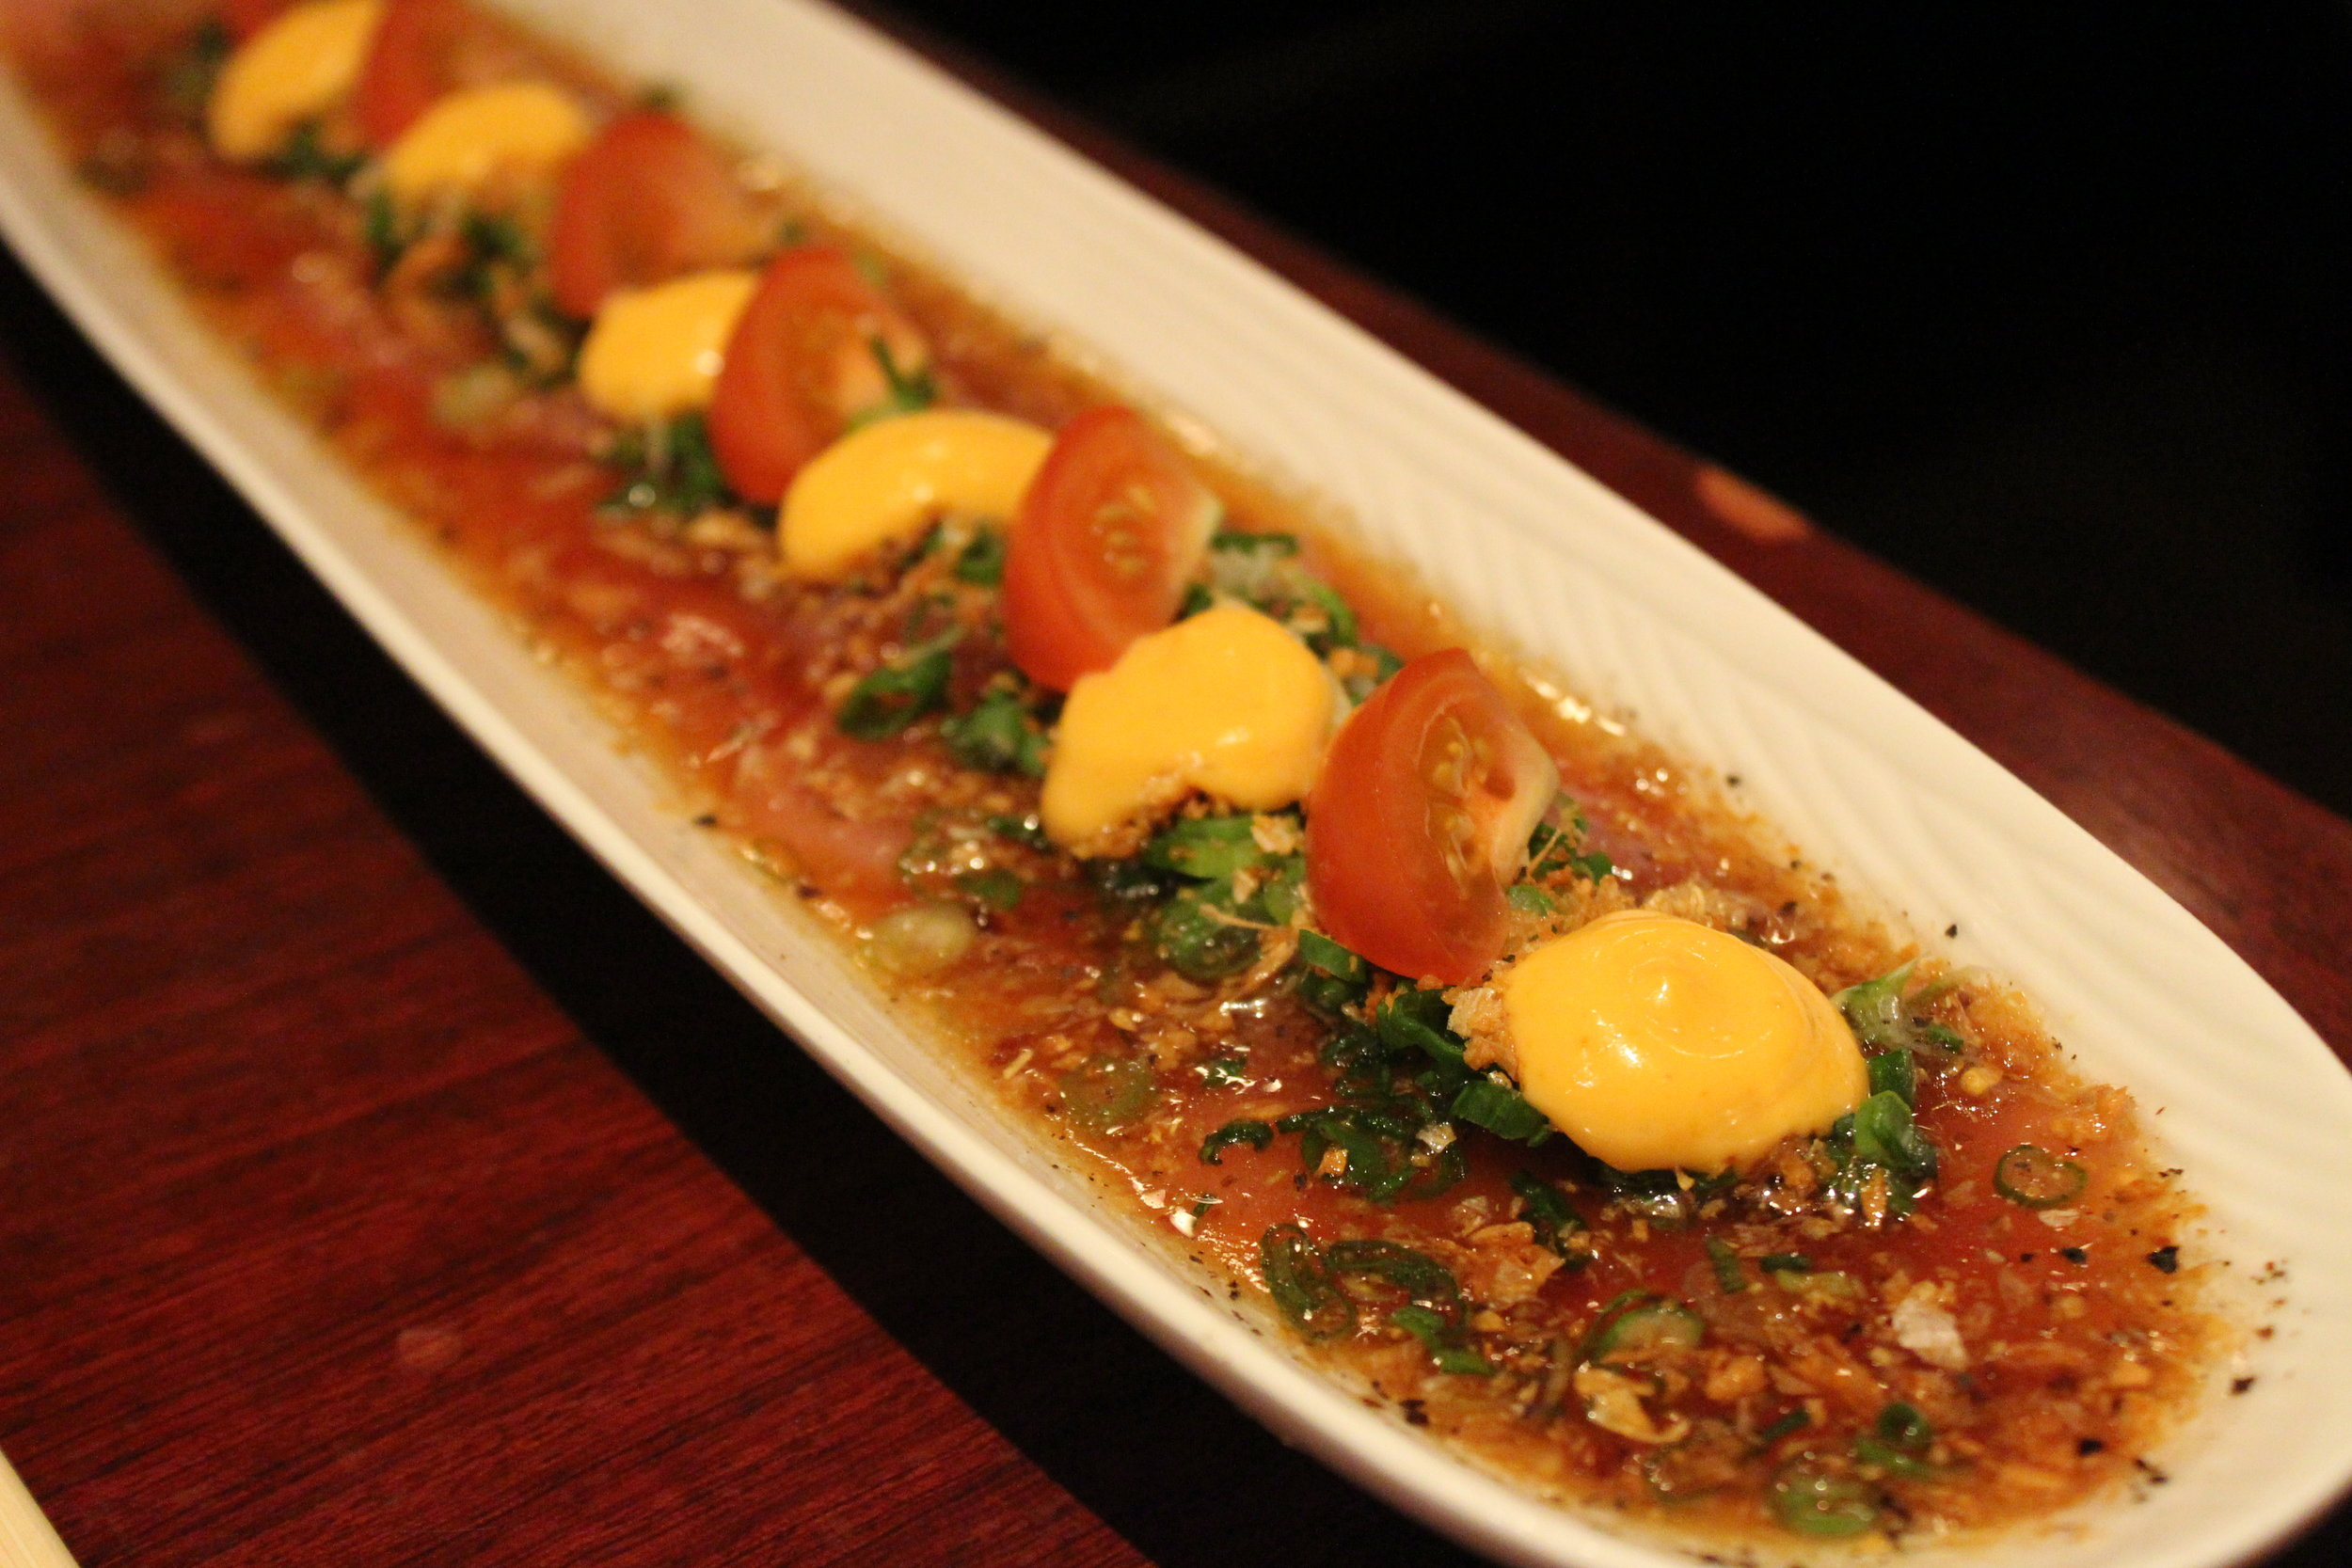 Spicy Tuna Carpaccio with Scallions, Fried Garlic Chips, and Spicy Mayonnaise at Hakata Tonton